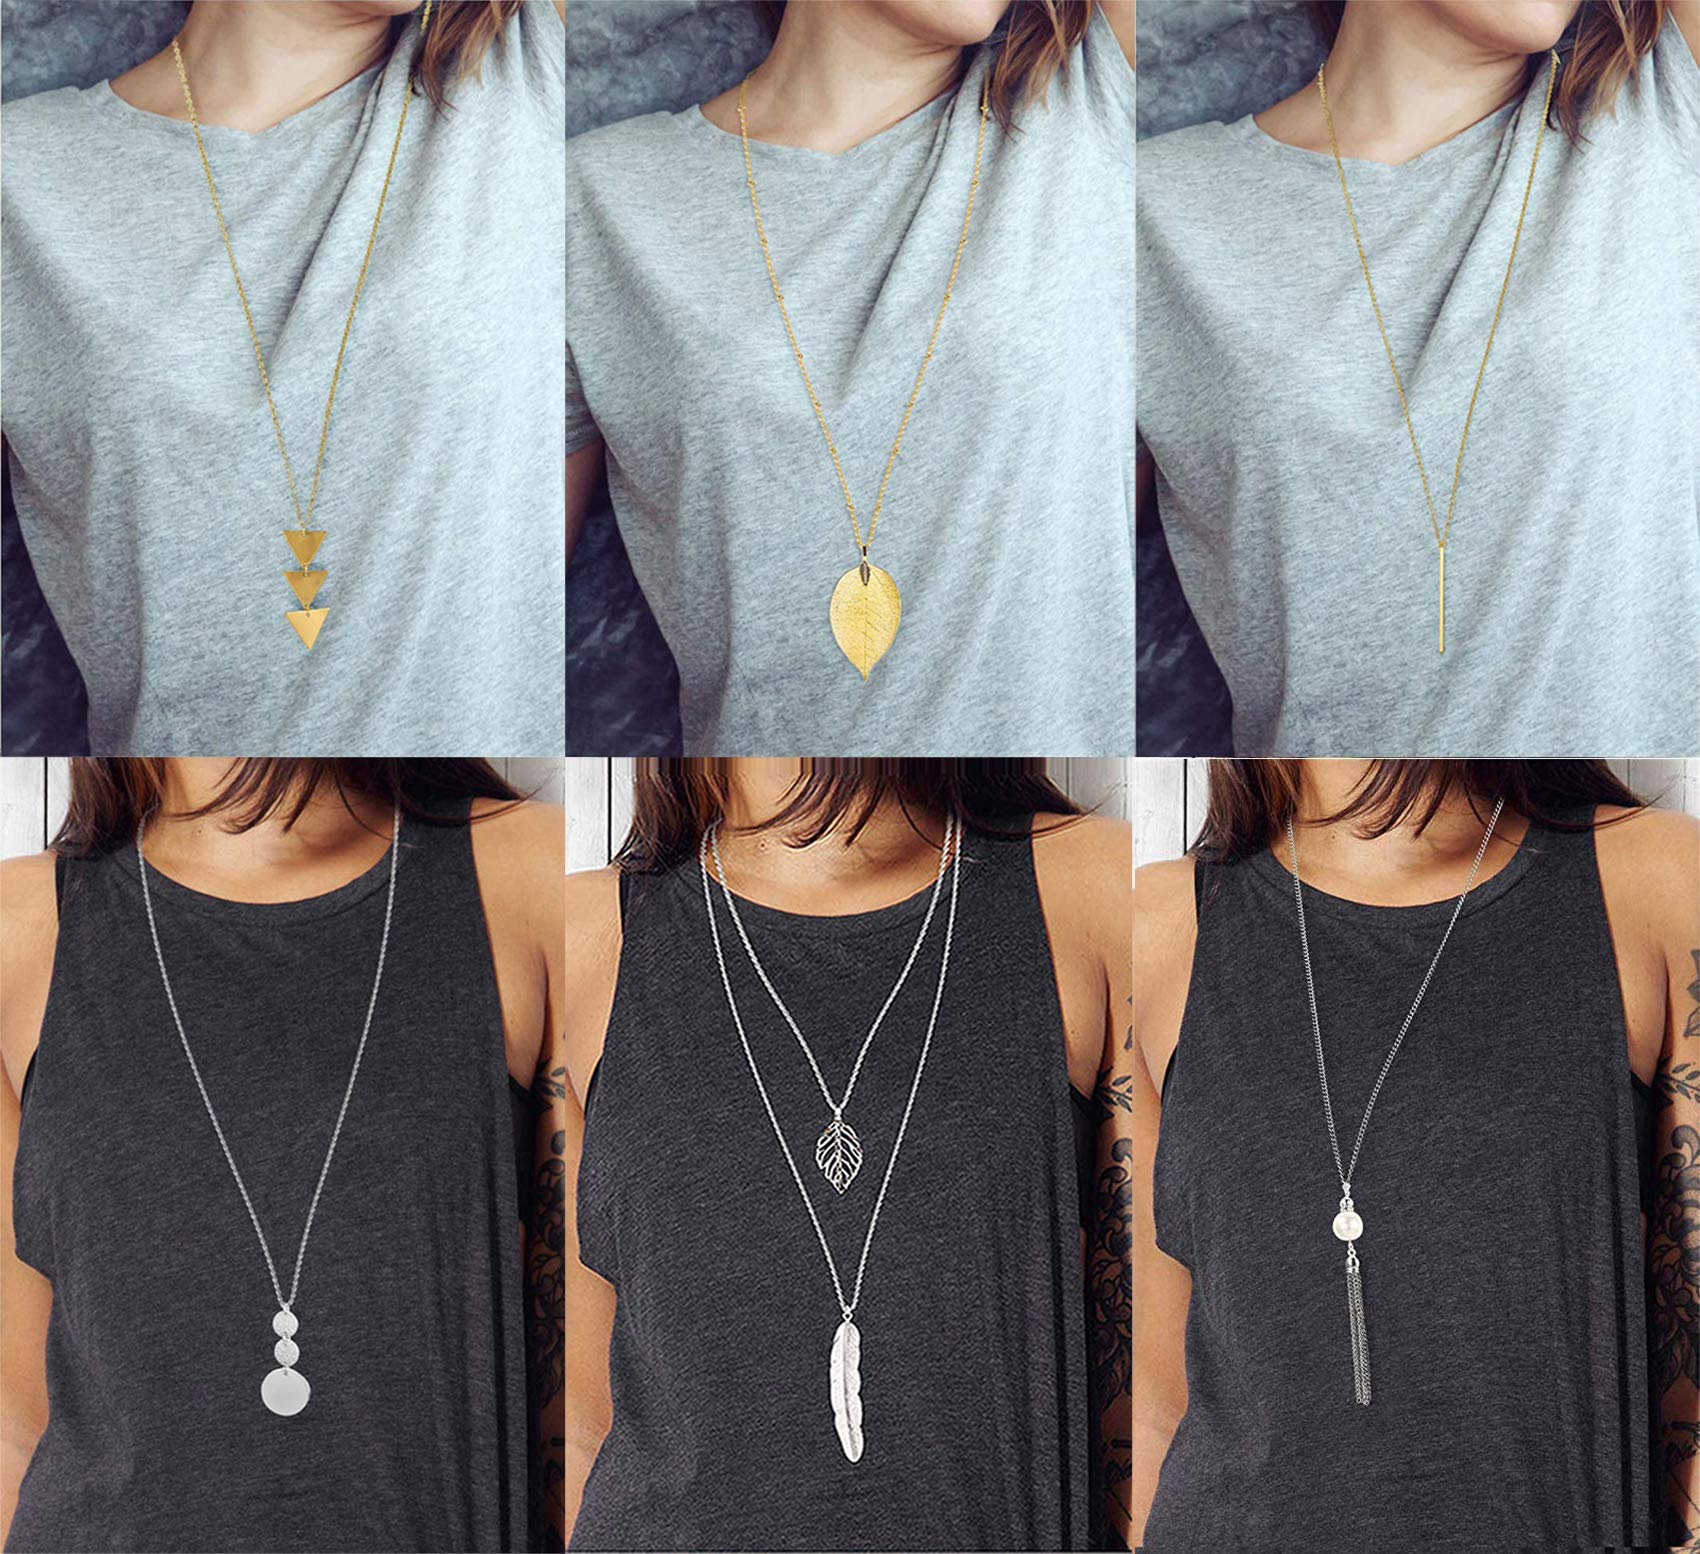 Anlsen 6PCS Long Pendant Necklace for Women Girls Layer Simple Bar Three Triangle Tassel Y Necklace Set by Anlsen